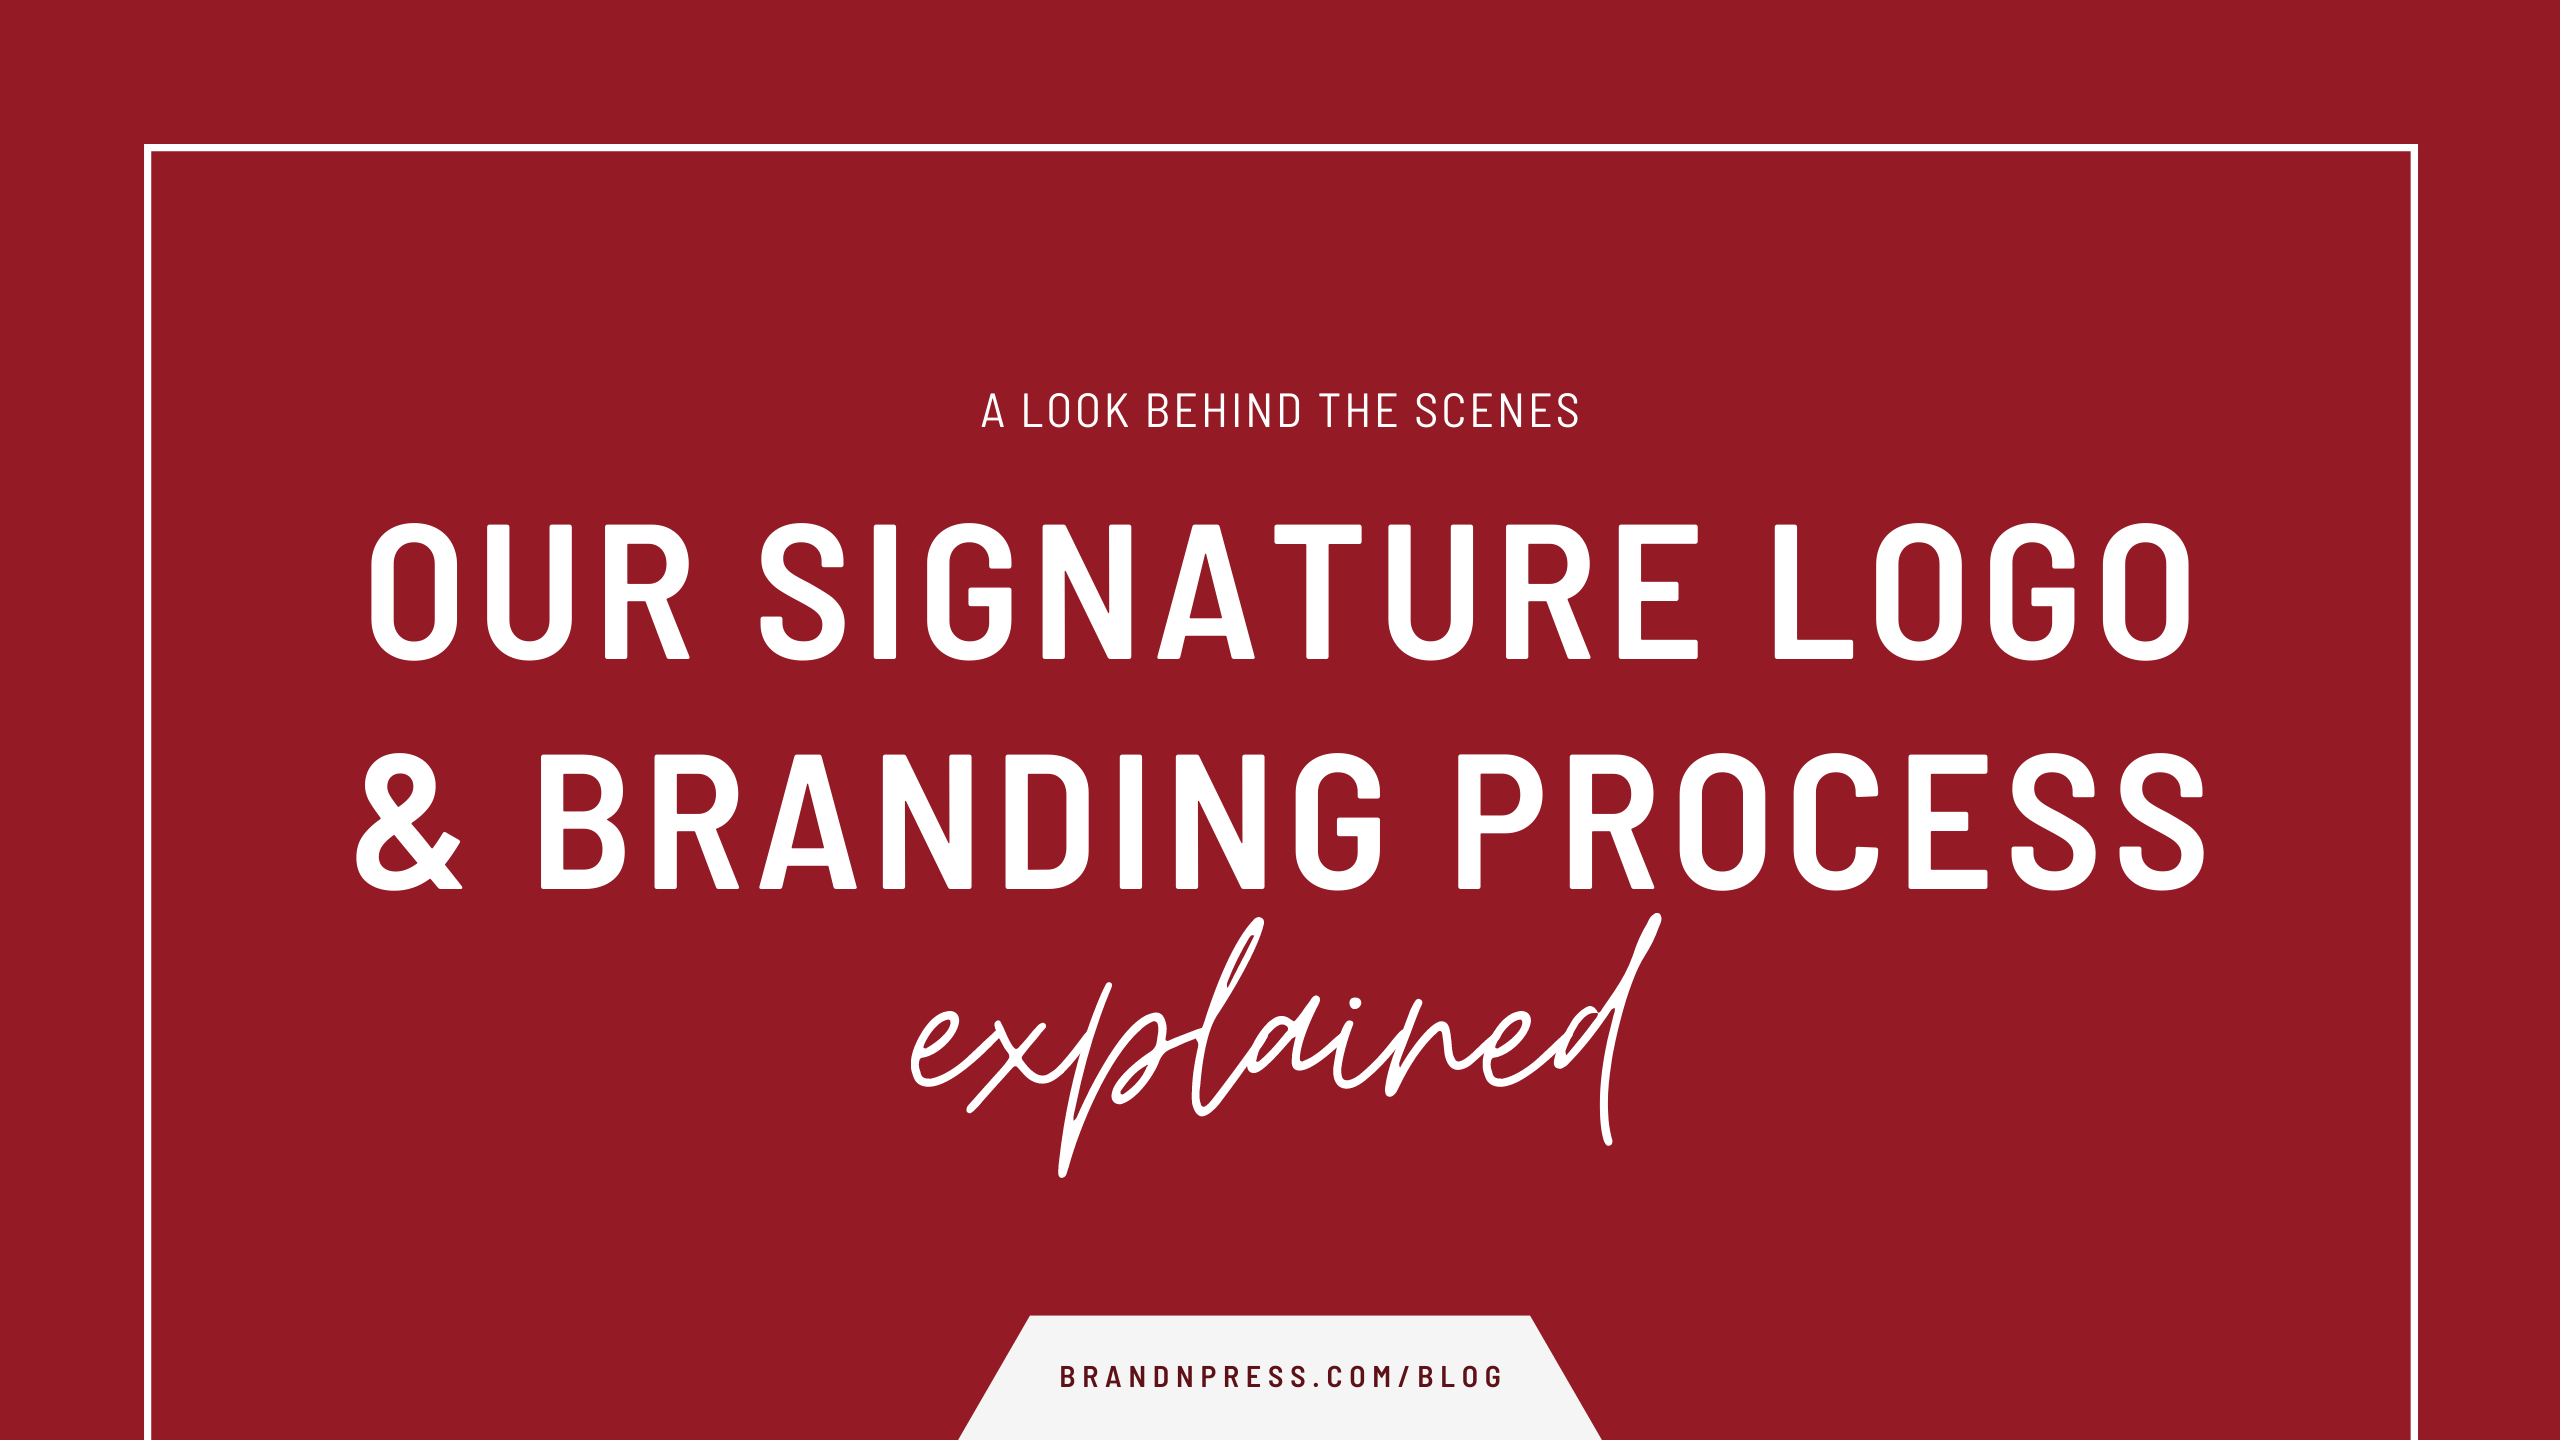 Our signature logo & branding design process for client work